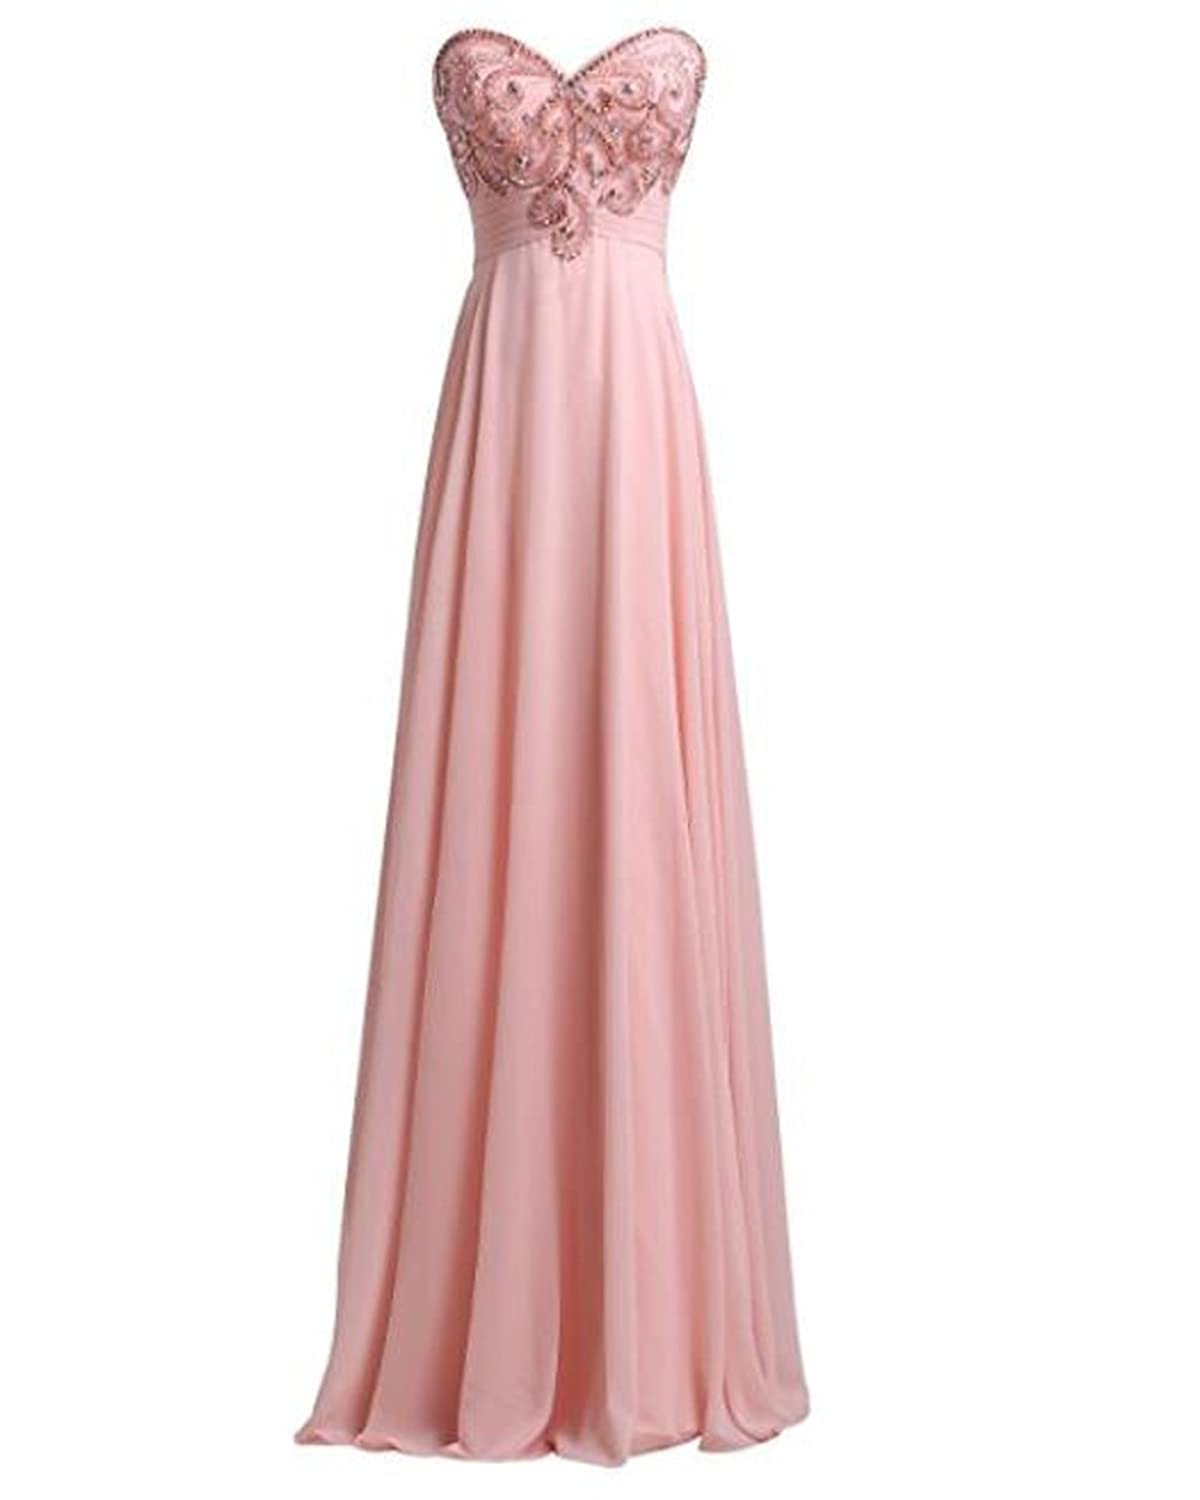 Leader of the Beauty Women's Prom Dress A Line Sweetheart Beading Evening Dress